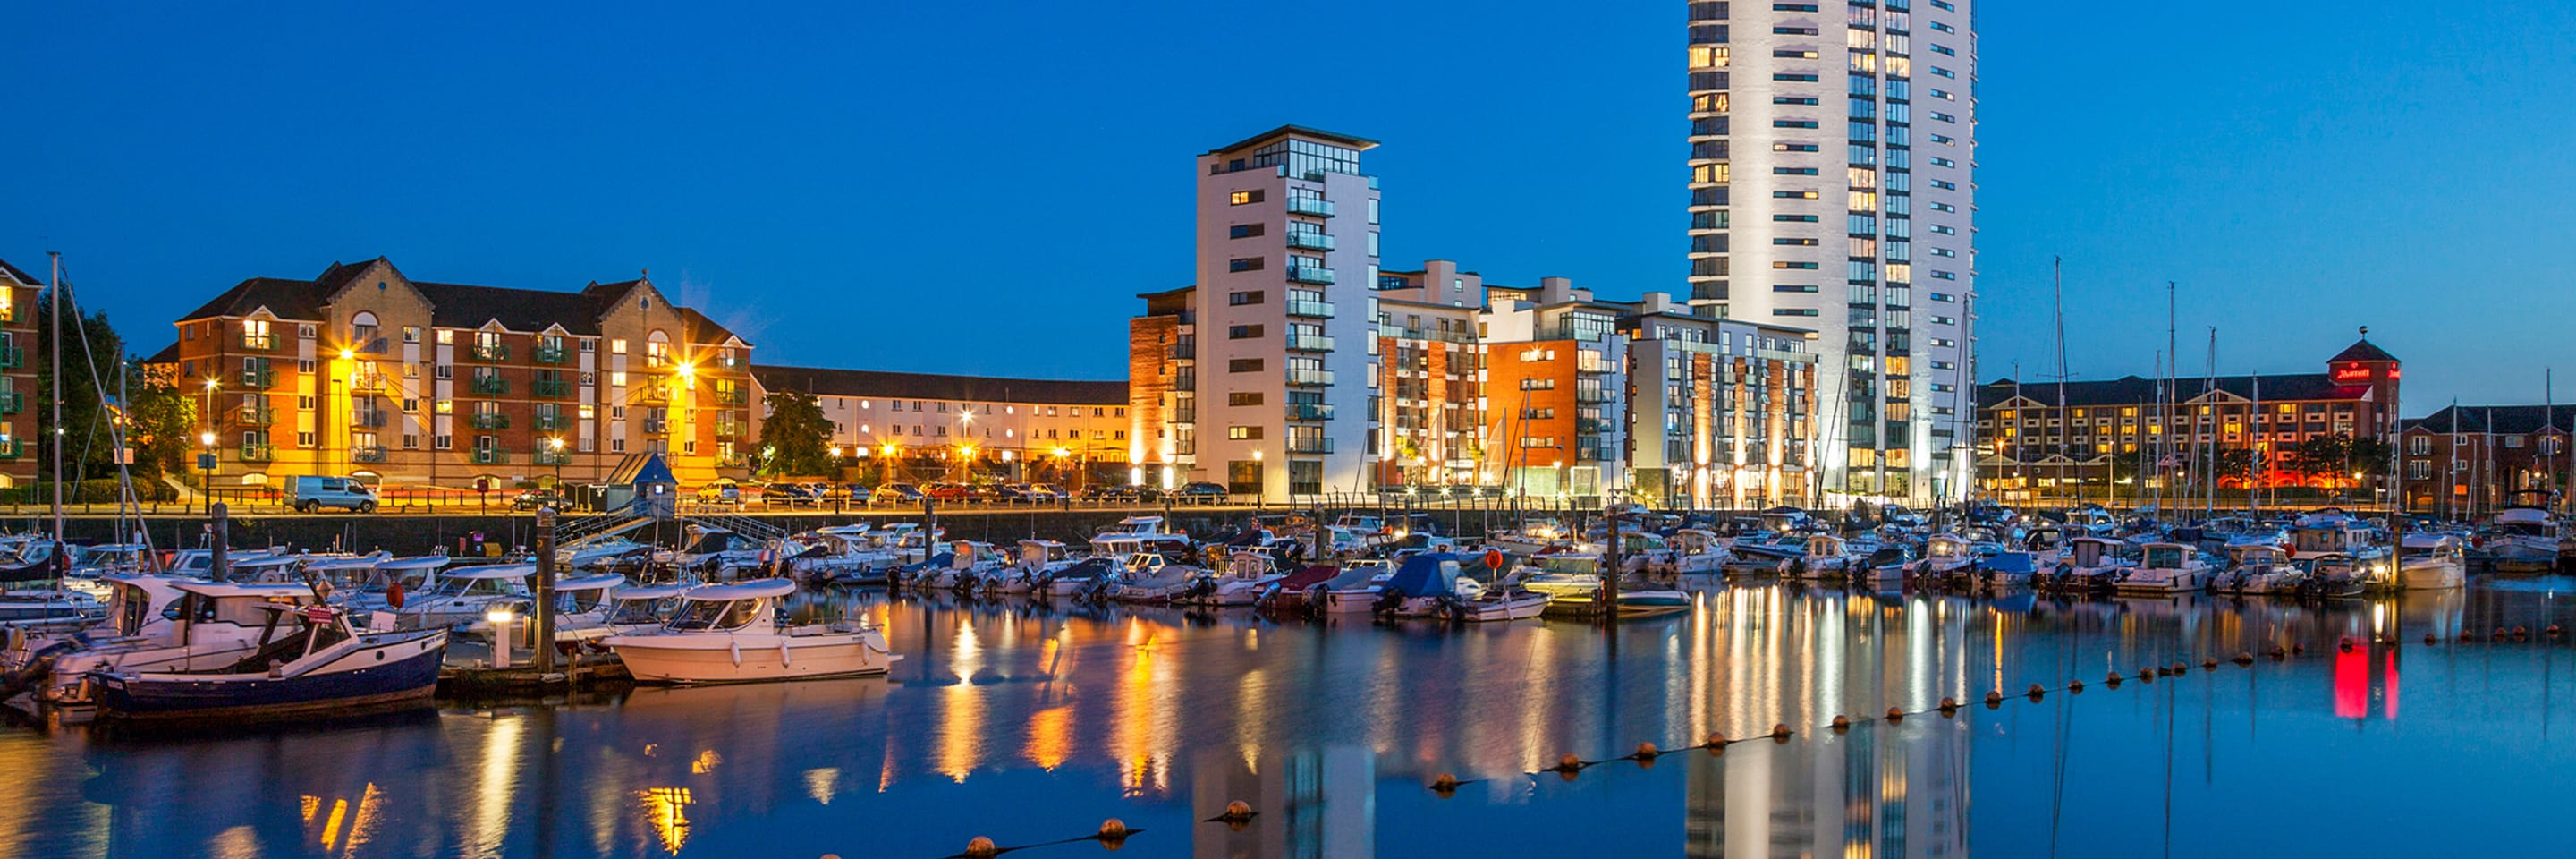 Hotels in Swansea